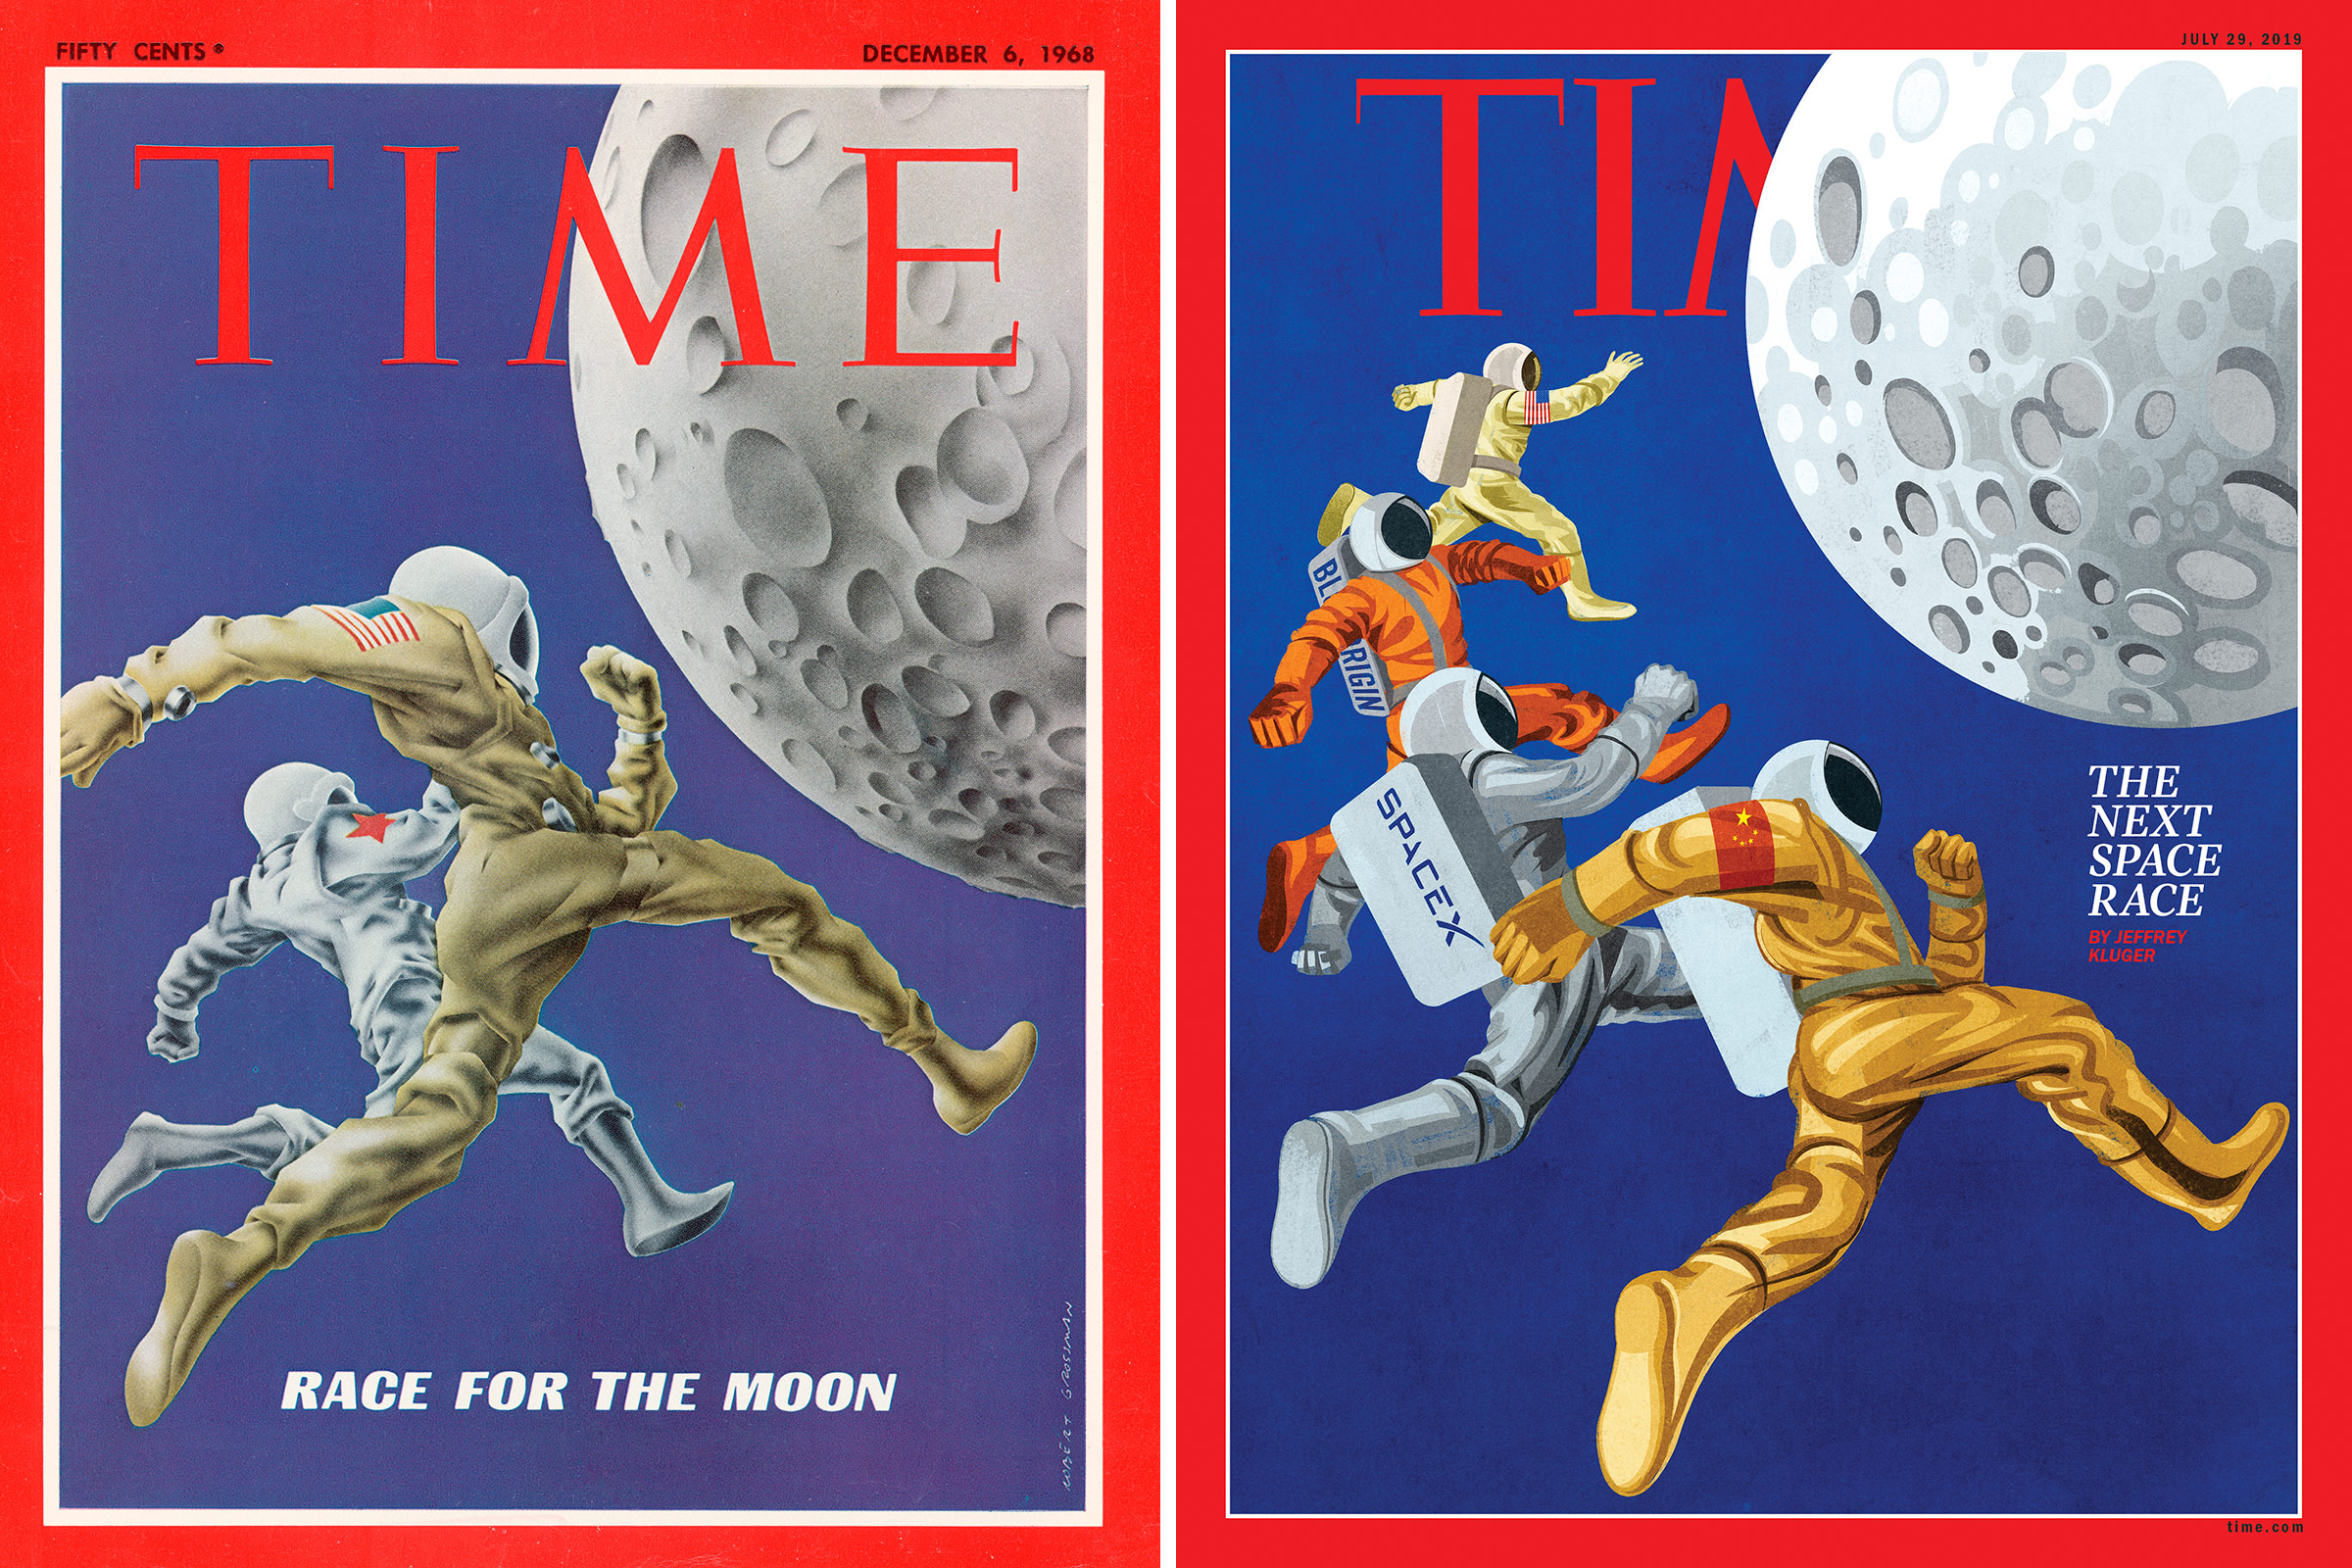 This week's cover illustration, right, of the new space race is a homage to the Dec. 6, 1968, cover. Published shortly before the success of Apollo 8 made U.S. astronauts first to orbit the moon, that issue marked a pivotal moment for space exploration.